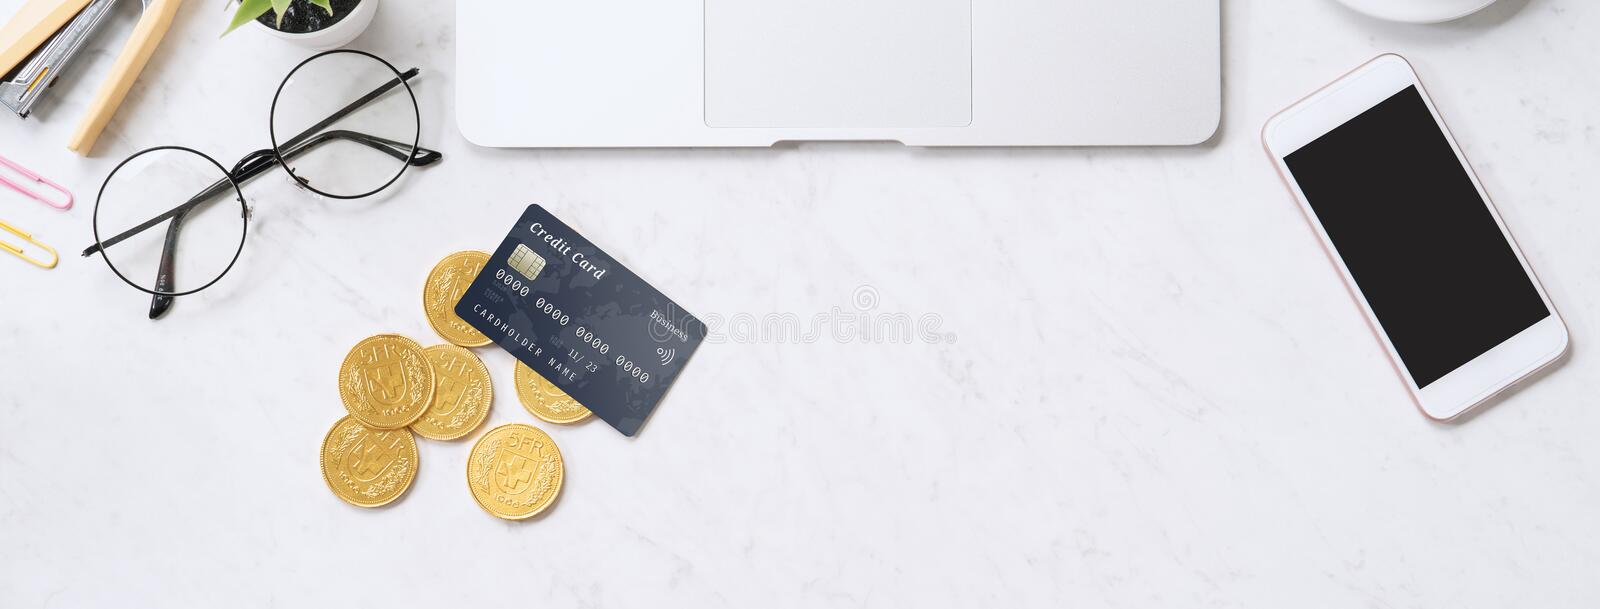 Concept of online payment with credit card with smart phone, laptop computer on office desk on clean bright marble table royalty free stock photo